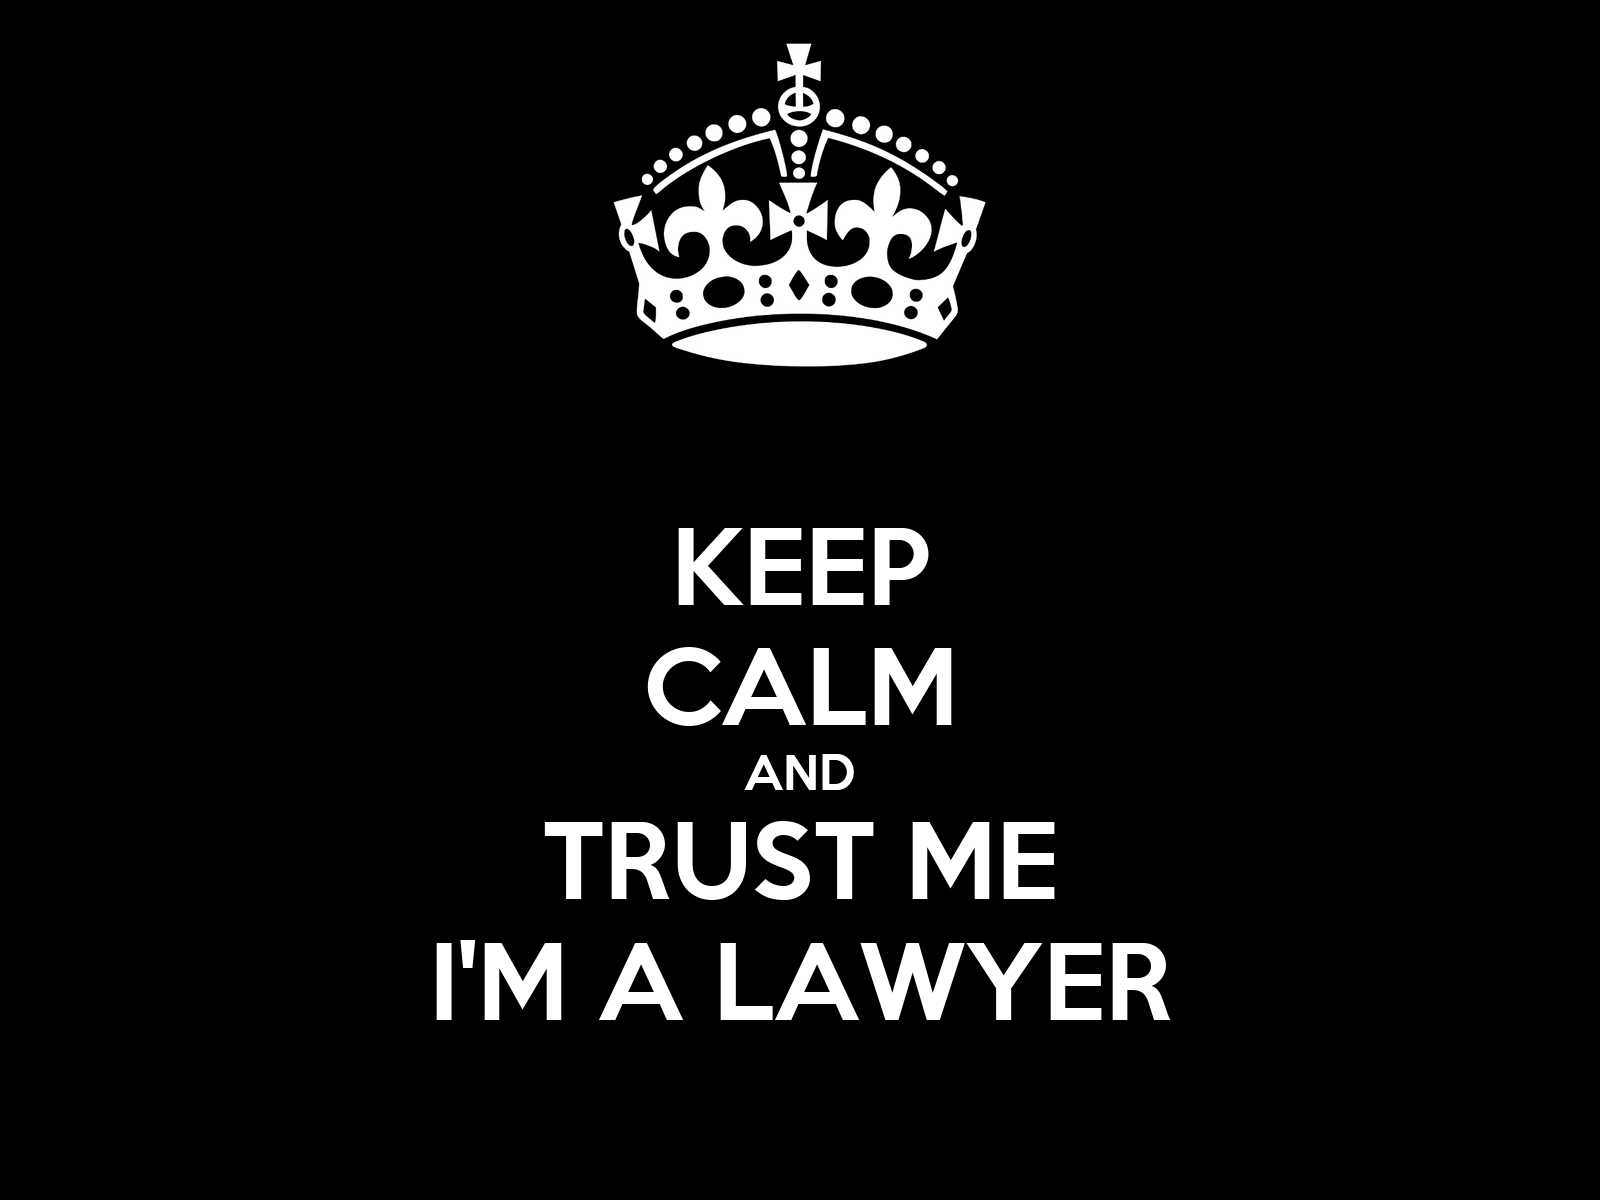 Wall Stickers Black Keep Calm And Trust Me I M A Lawyer Keep Calm And Carry